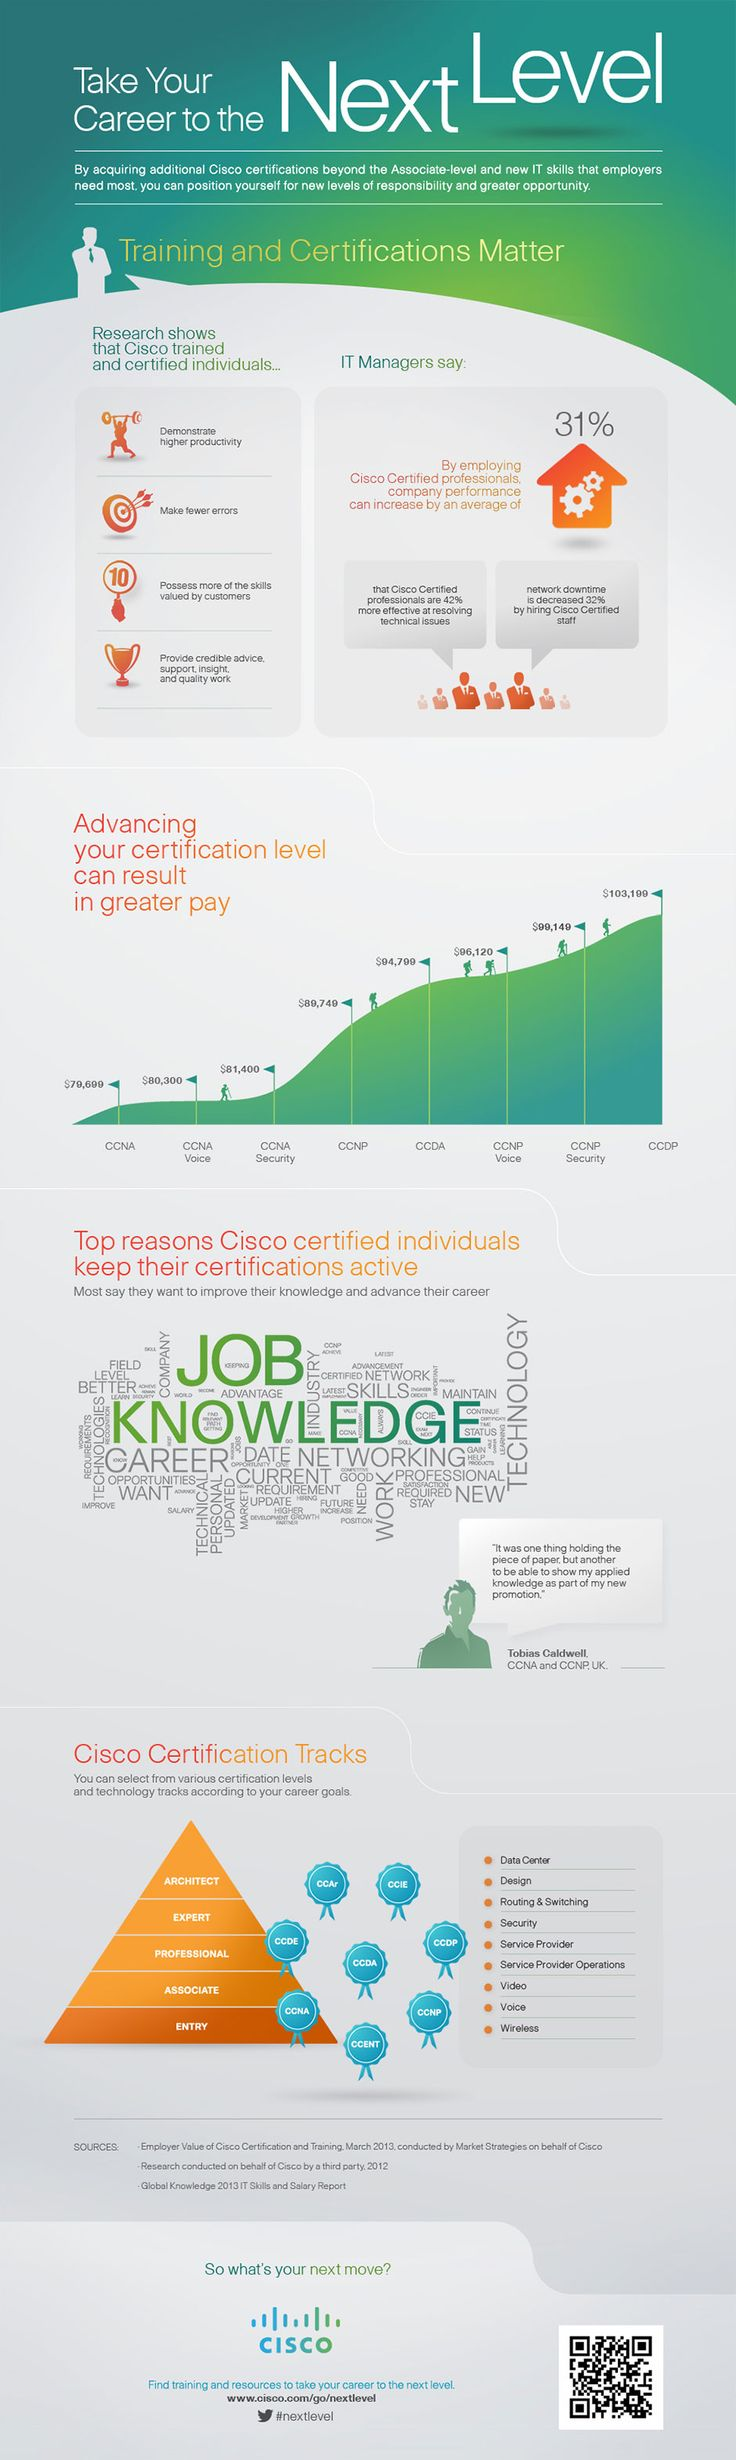 Learn how Cisco certifications can help advance careers, influence salaries, and enable certified professionals to bring success to the organizations that employ them. #nextlevel #ciscocert #itdemand